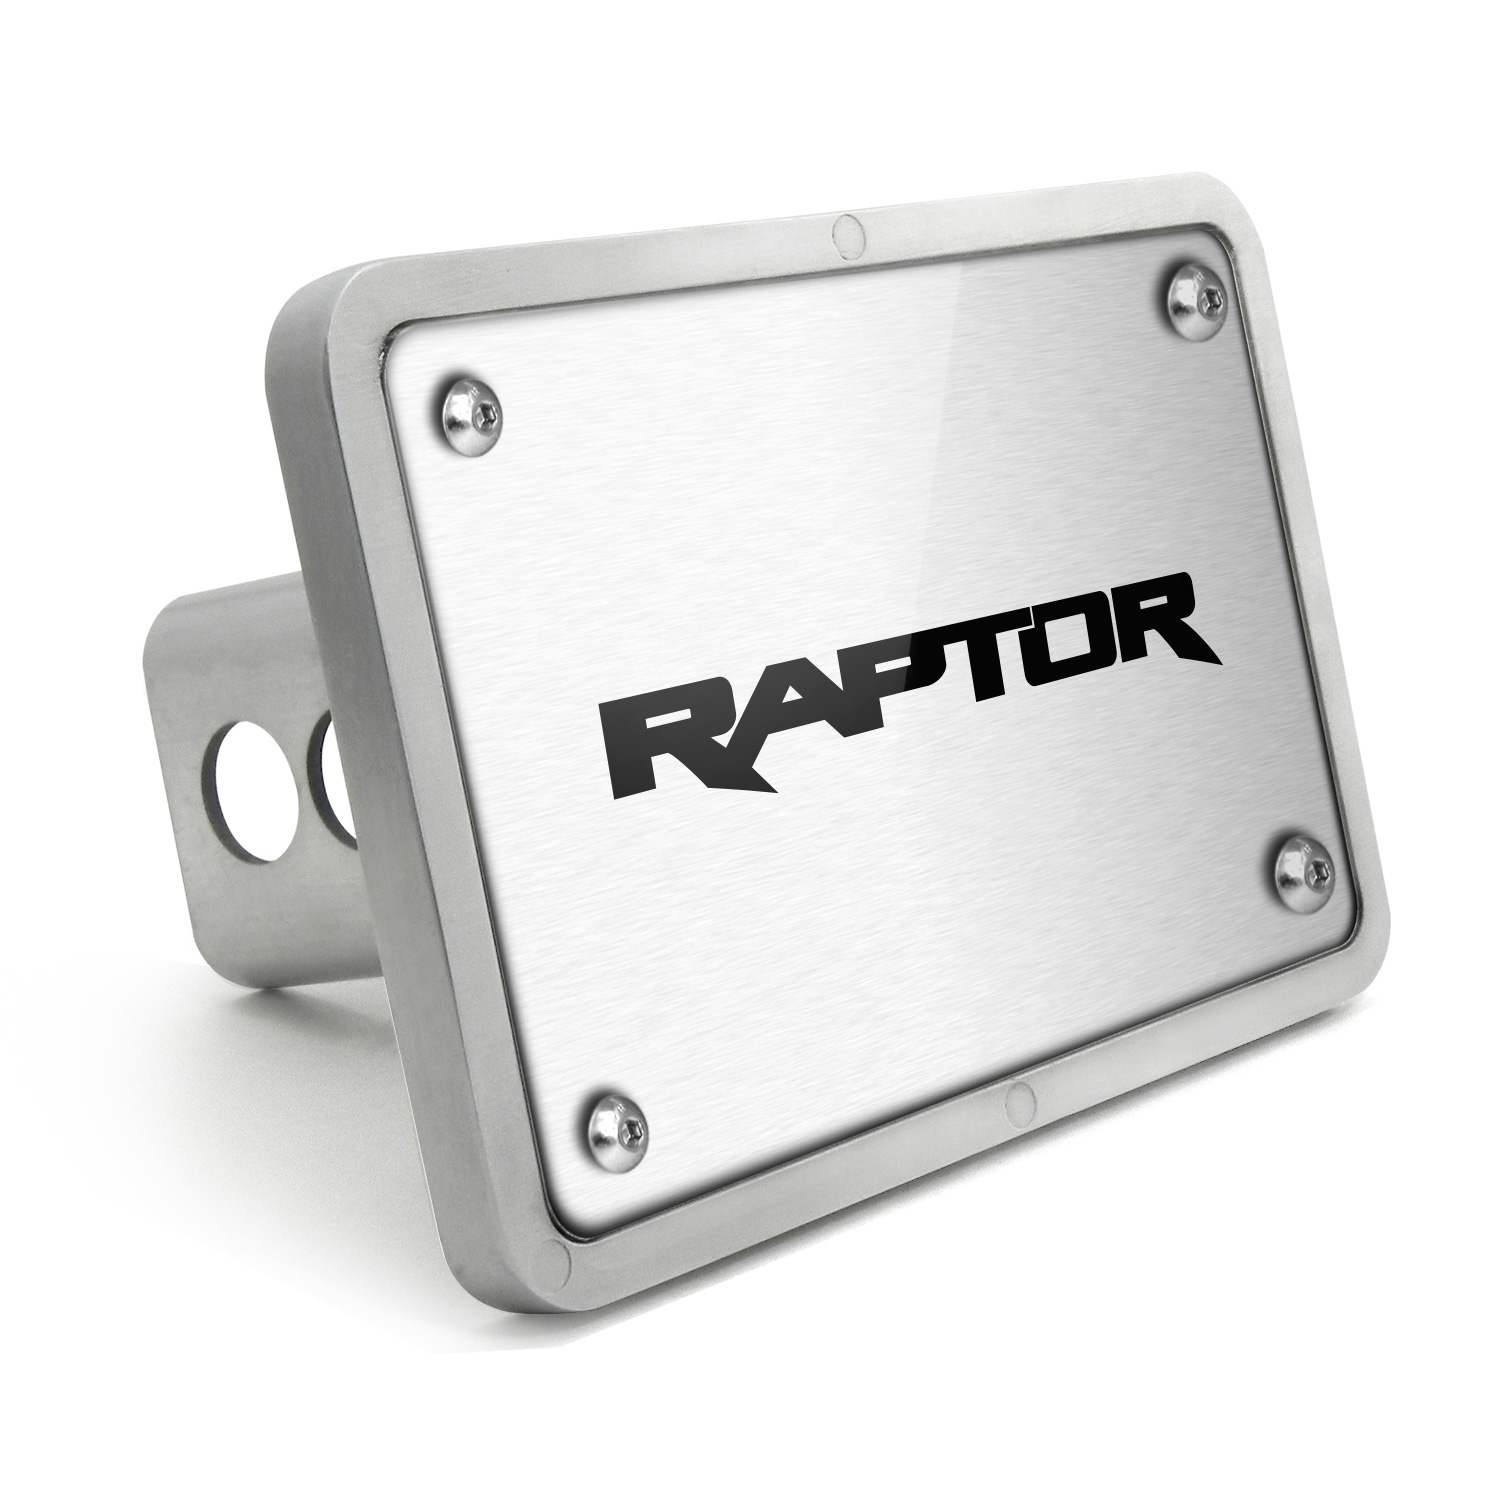 Ford Raptor 2017 UV Graphic Brushed Silver Billet Aluminum 2 inch Tow Hitch Cover